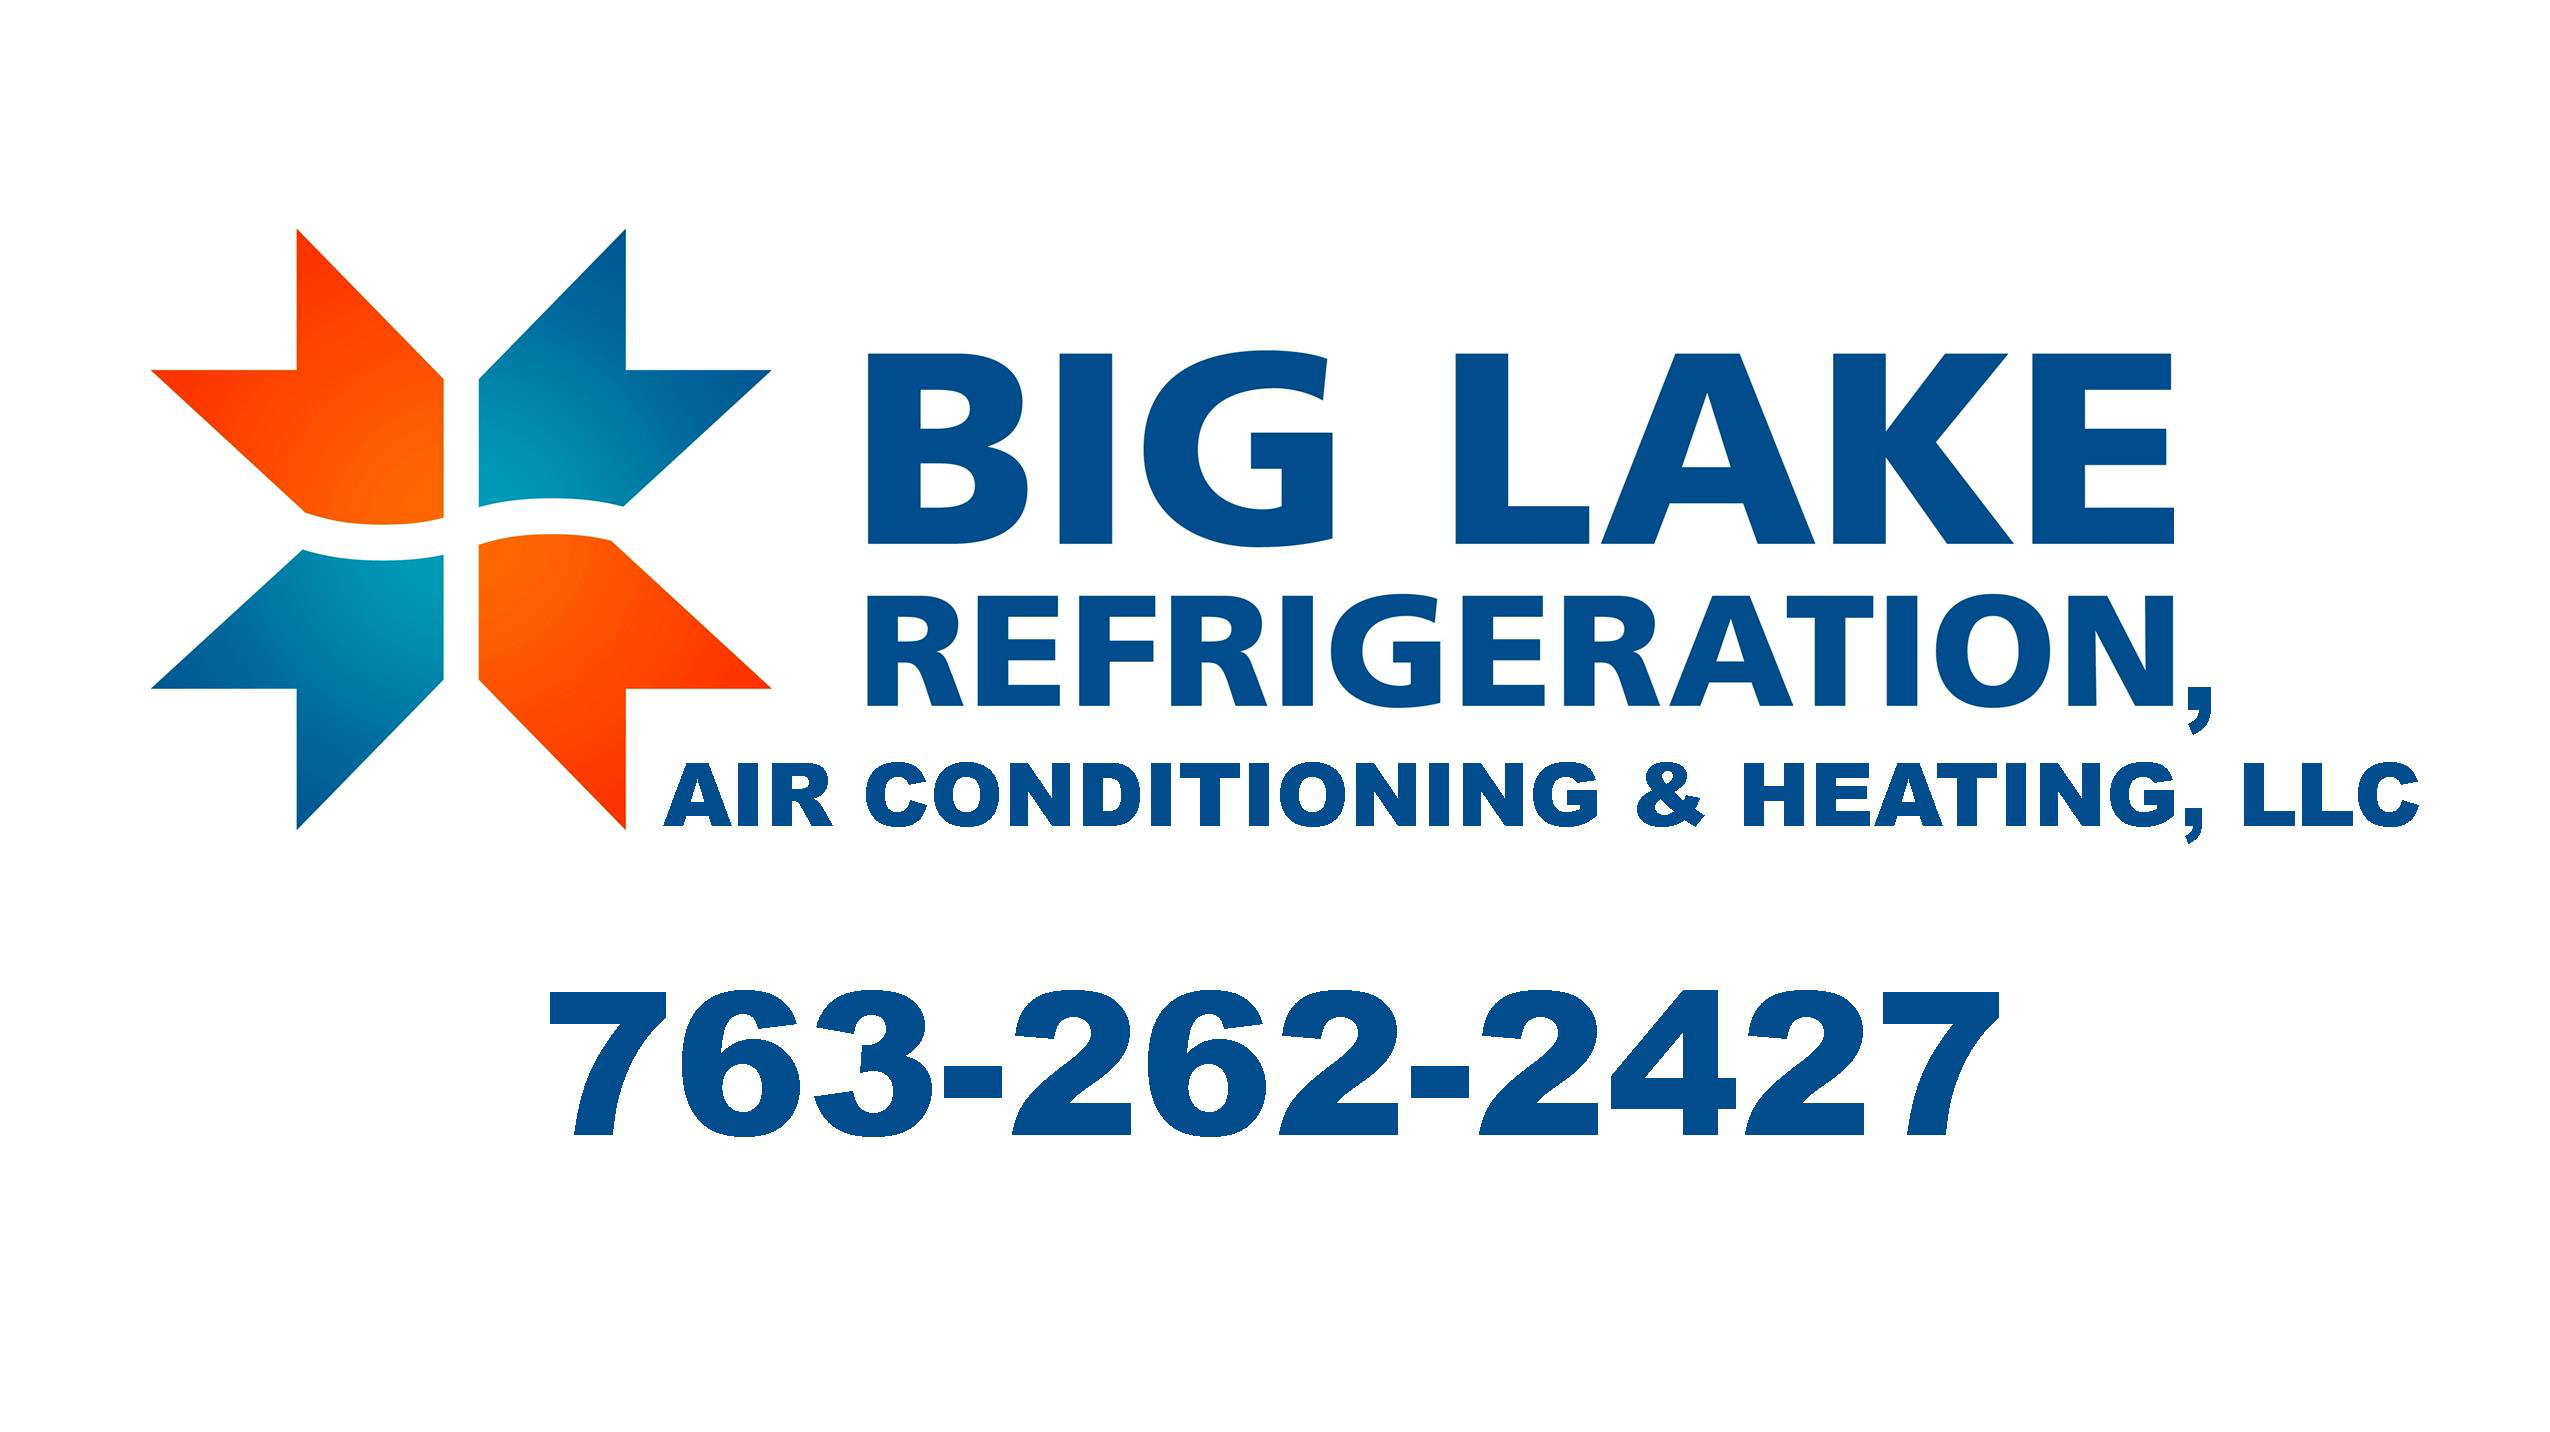 Big Lake Refrigeration, Air-Conditioning & Heating, LLC.